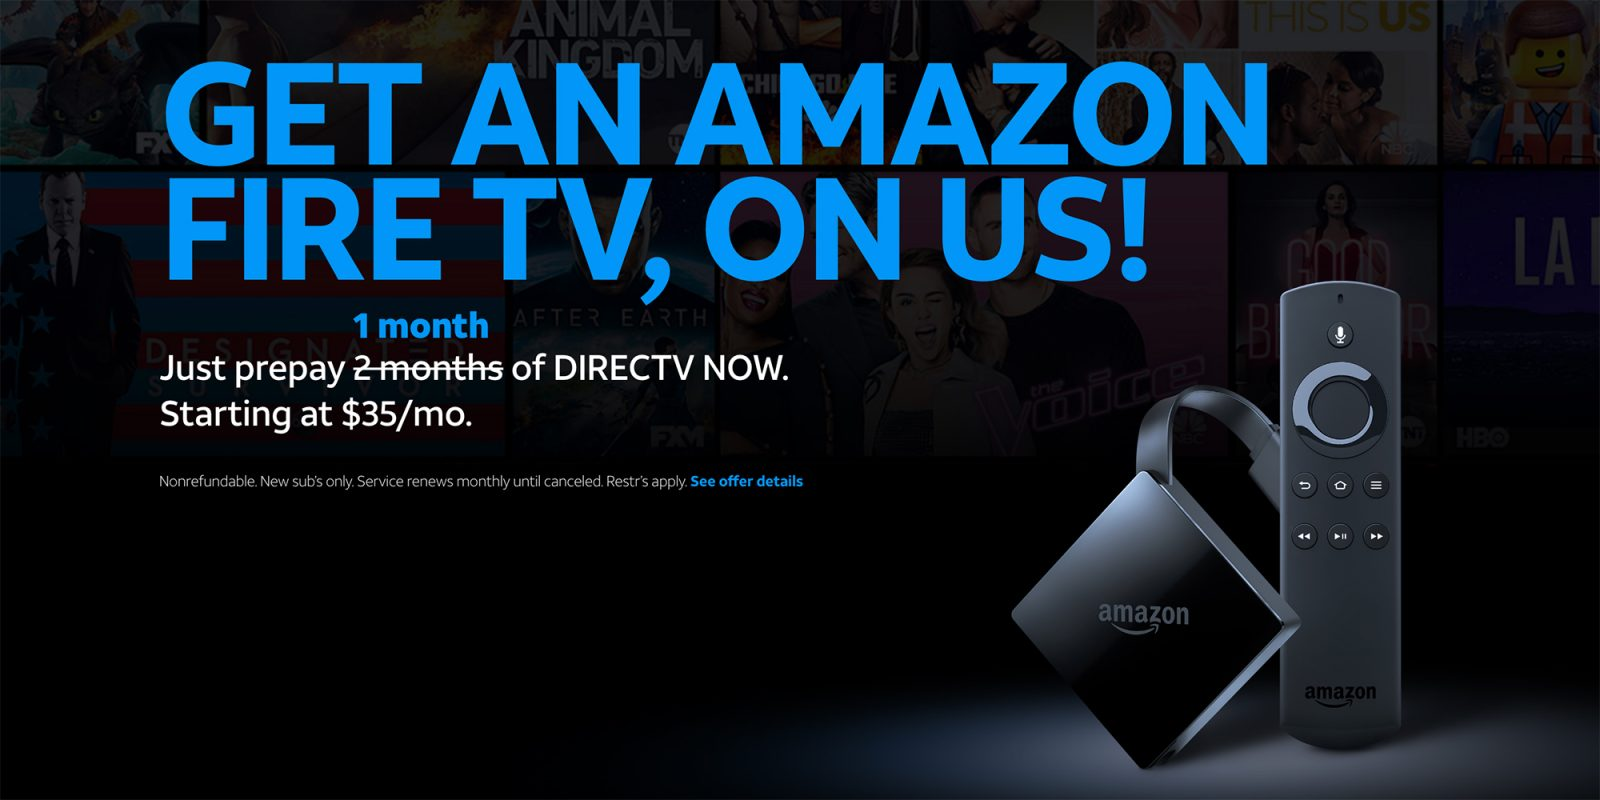 Score a free Amazon Fire TV 4K when you purchase 1-mo. of DirecTV Now  service